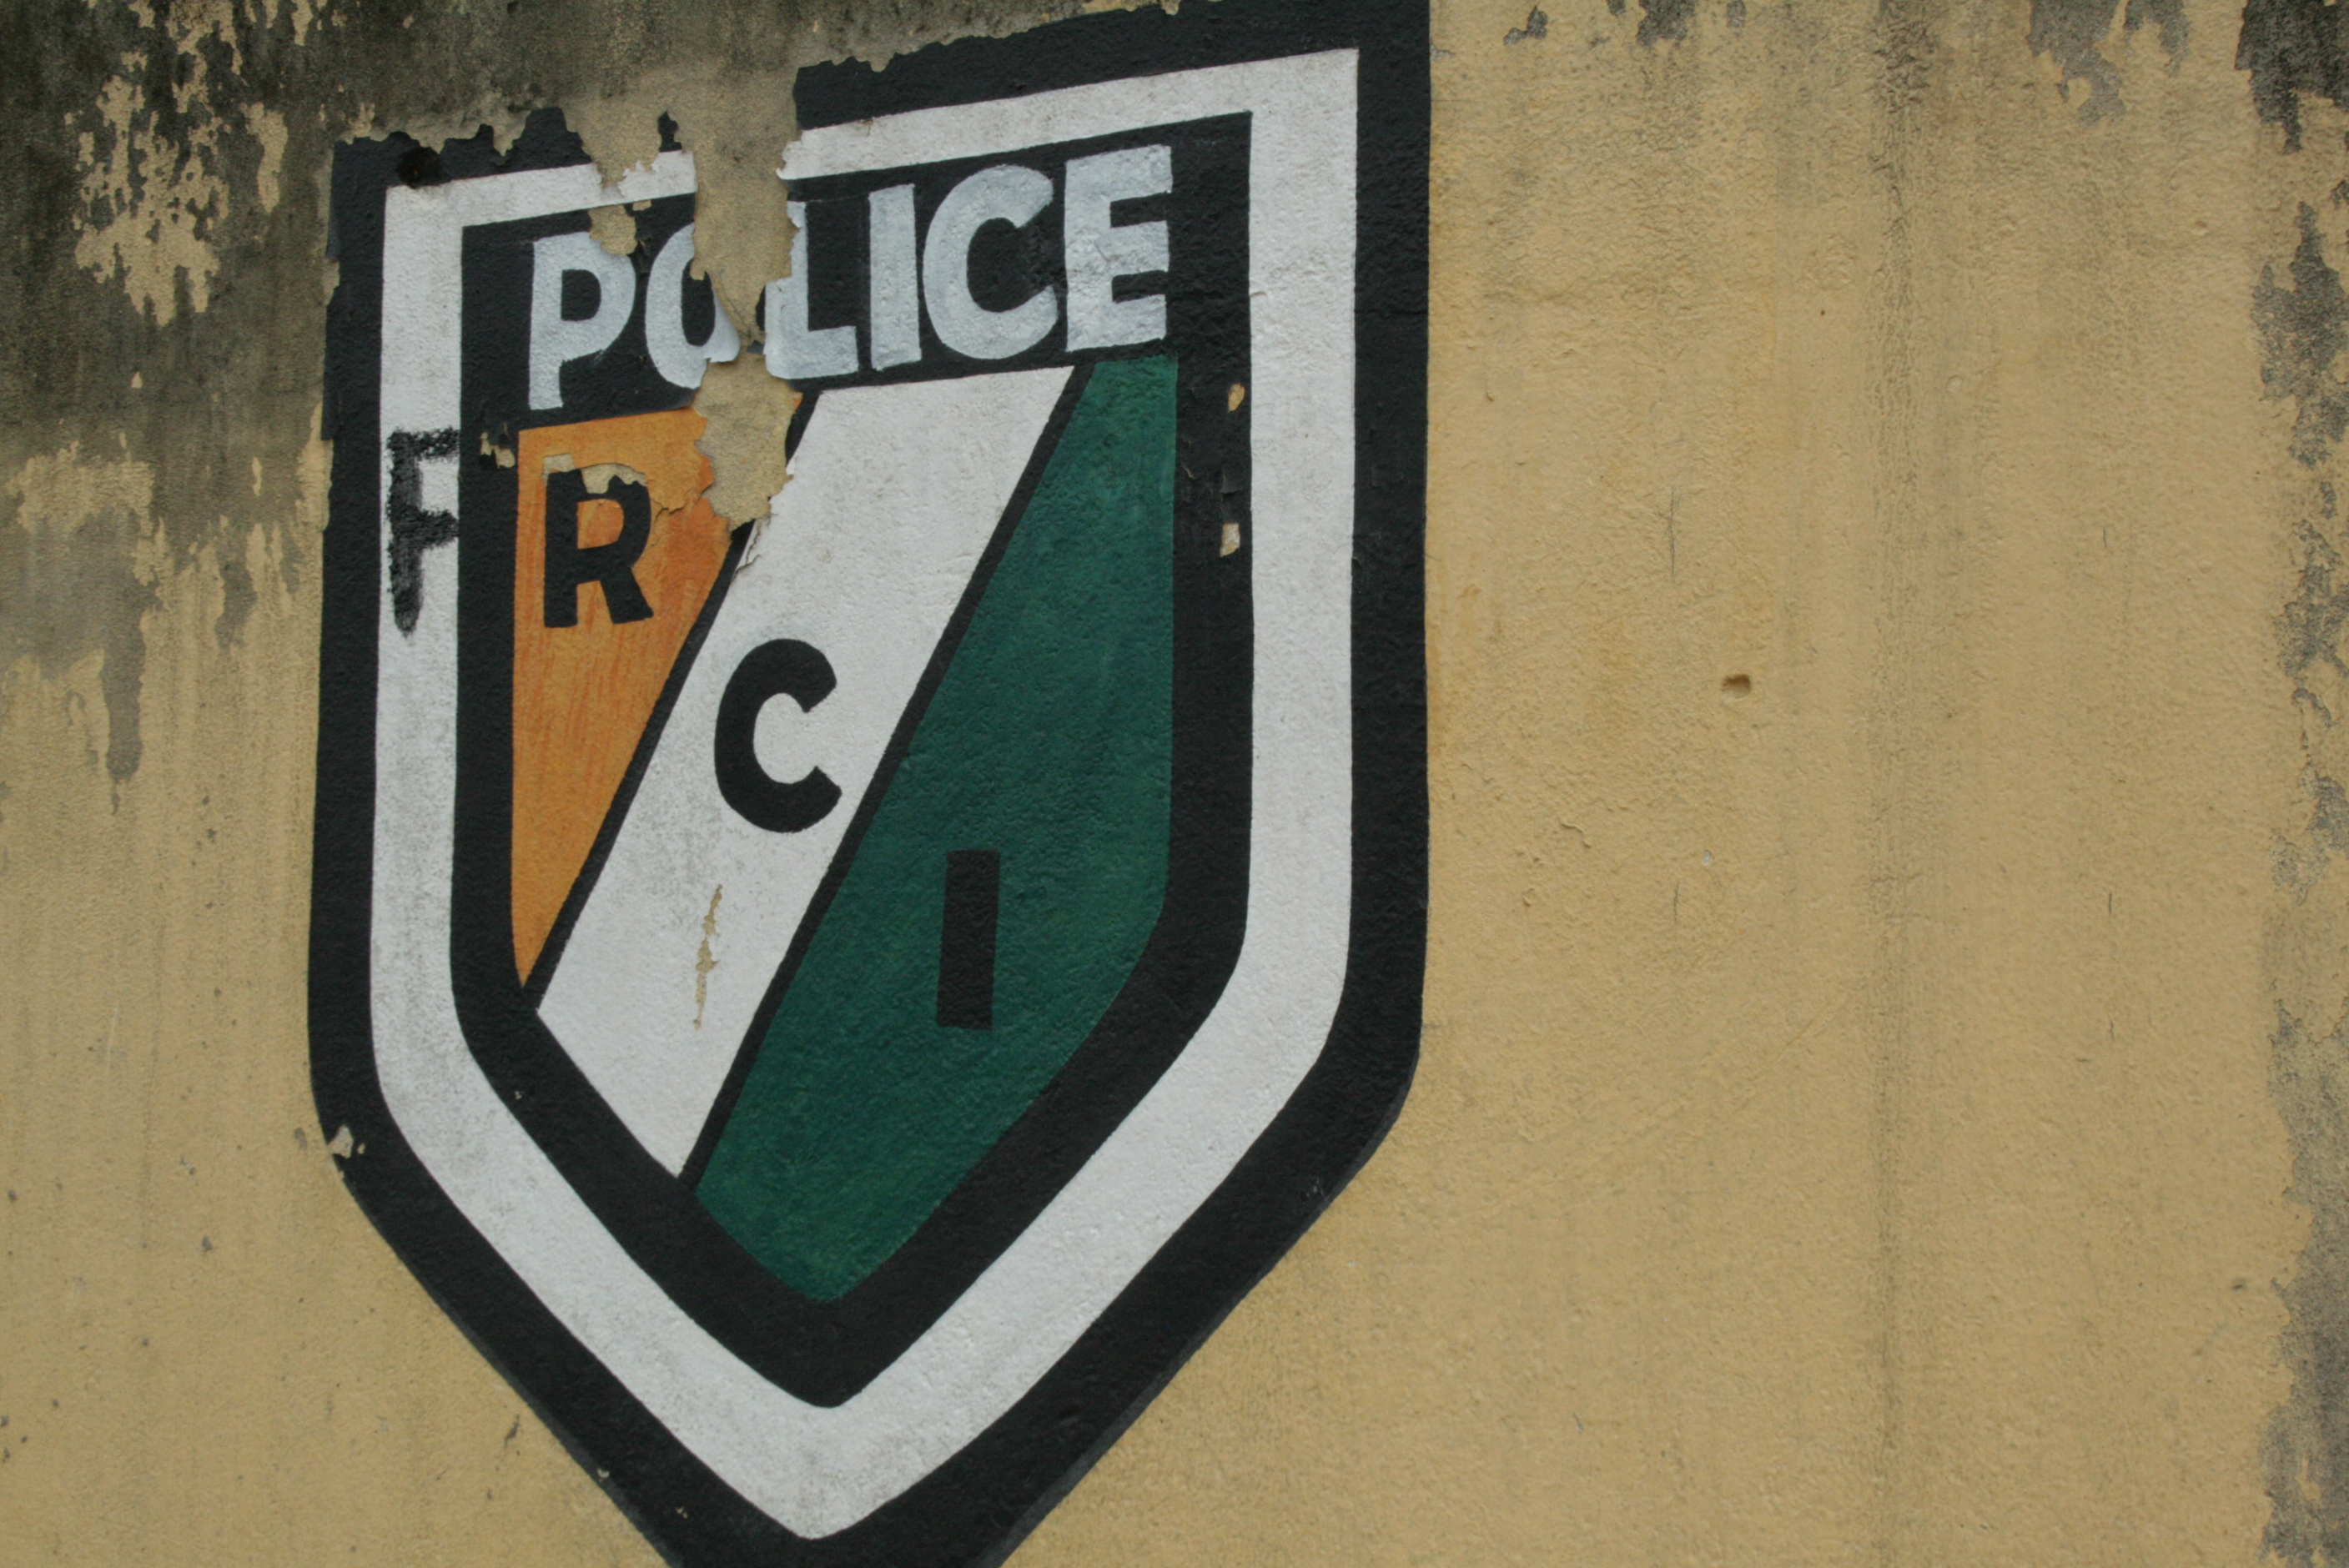 "Ivoirian national police emblem changed to spell ""FRCI"" - the name of the new military. Adjamé District of the commercial capital, Abidjan, Côte d'Ivoire July 2011"